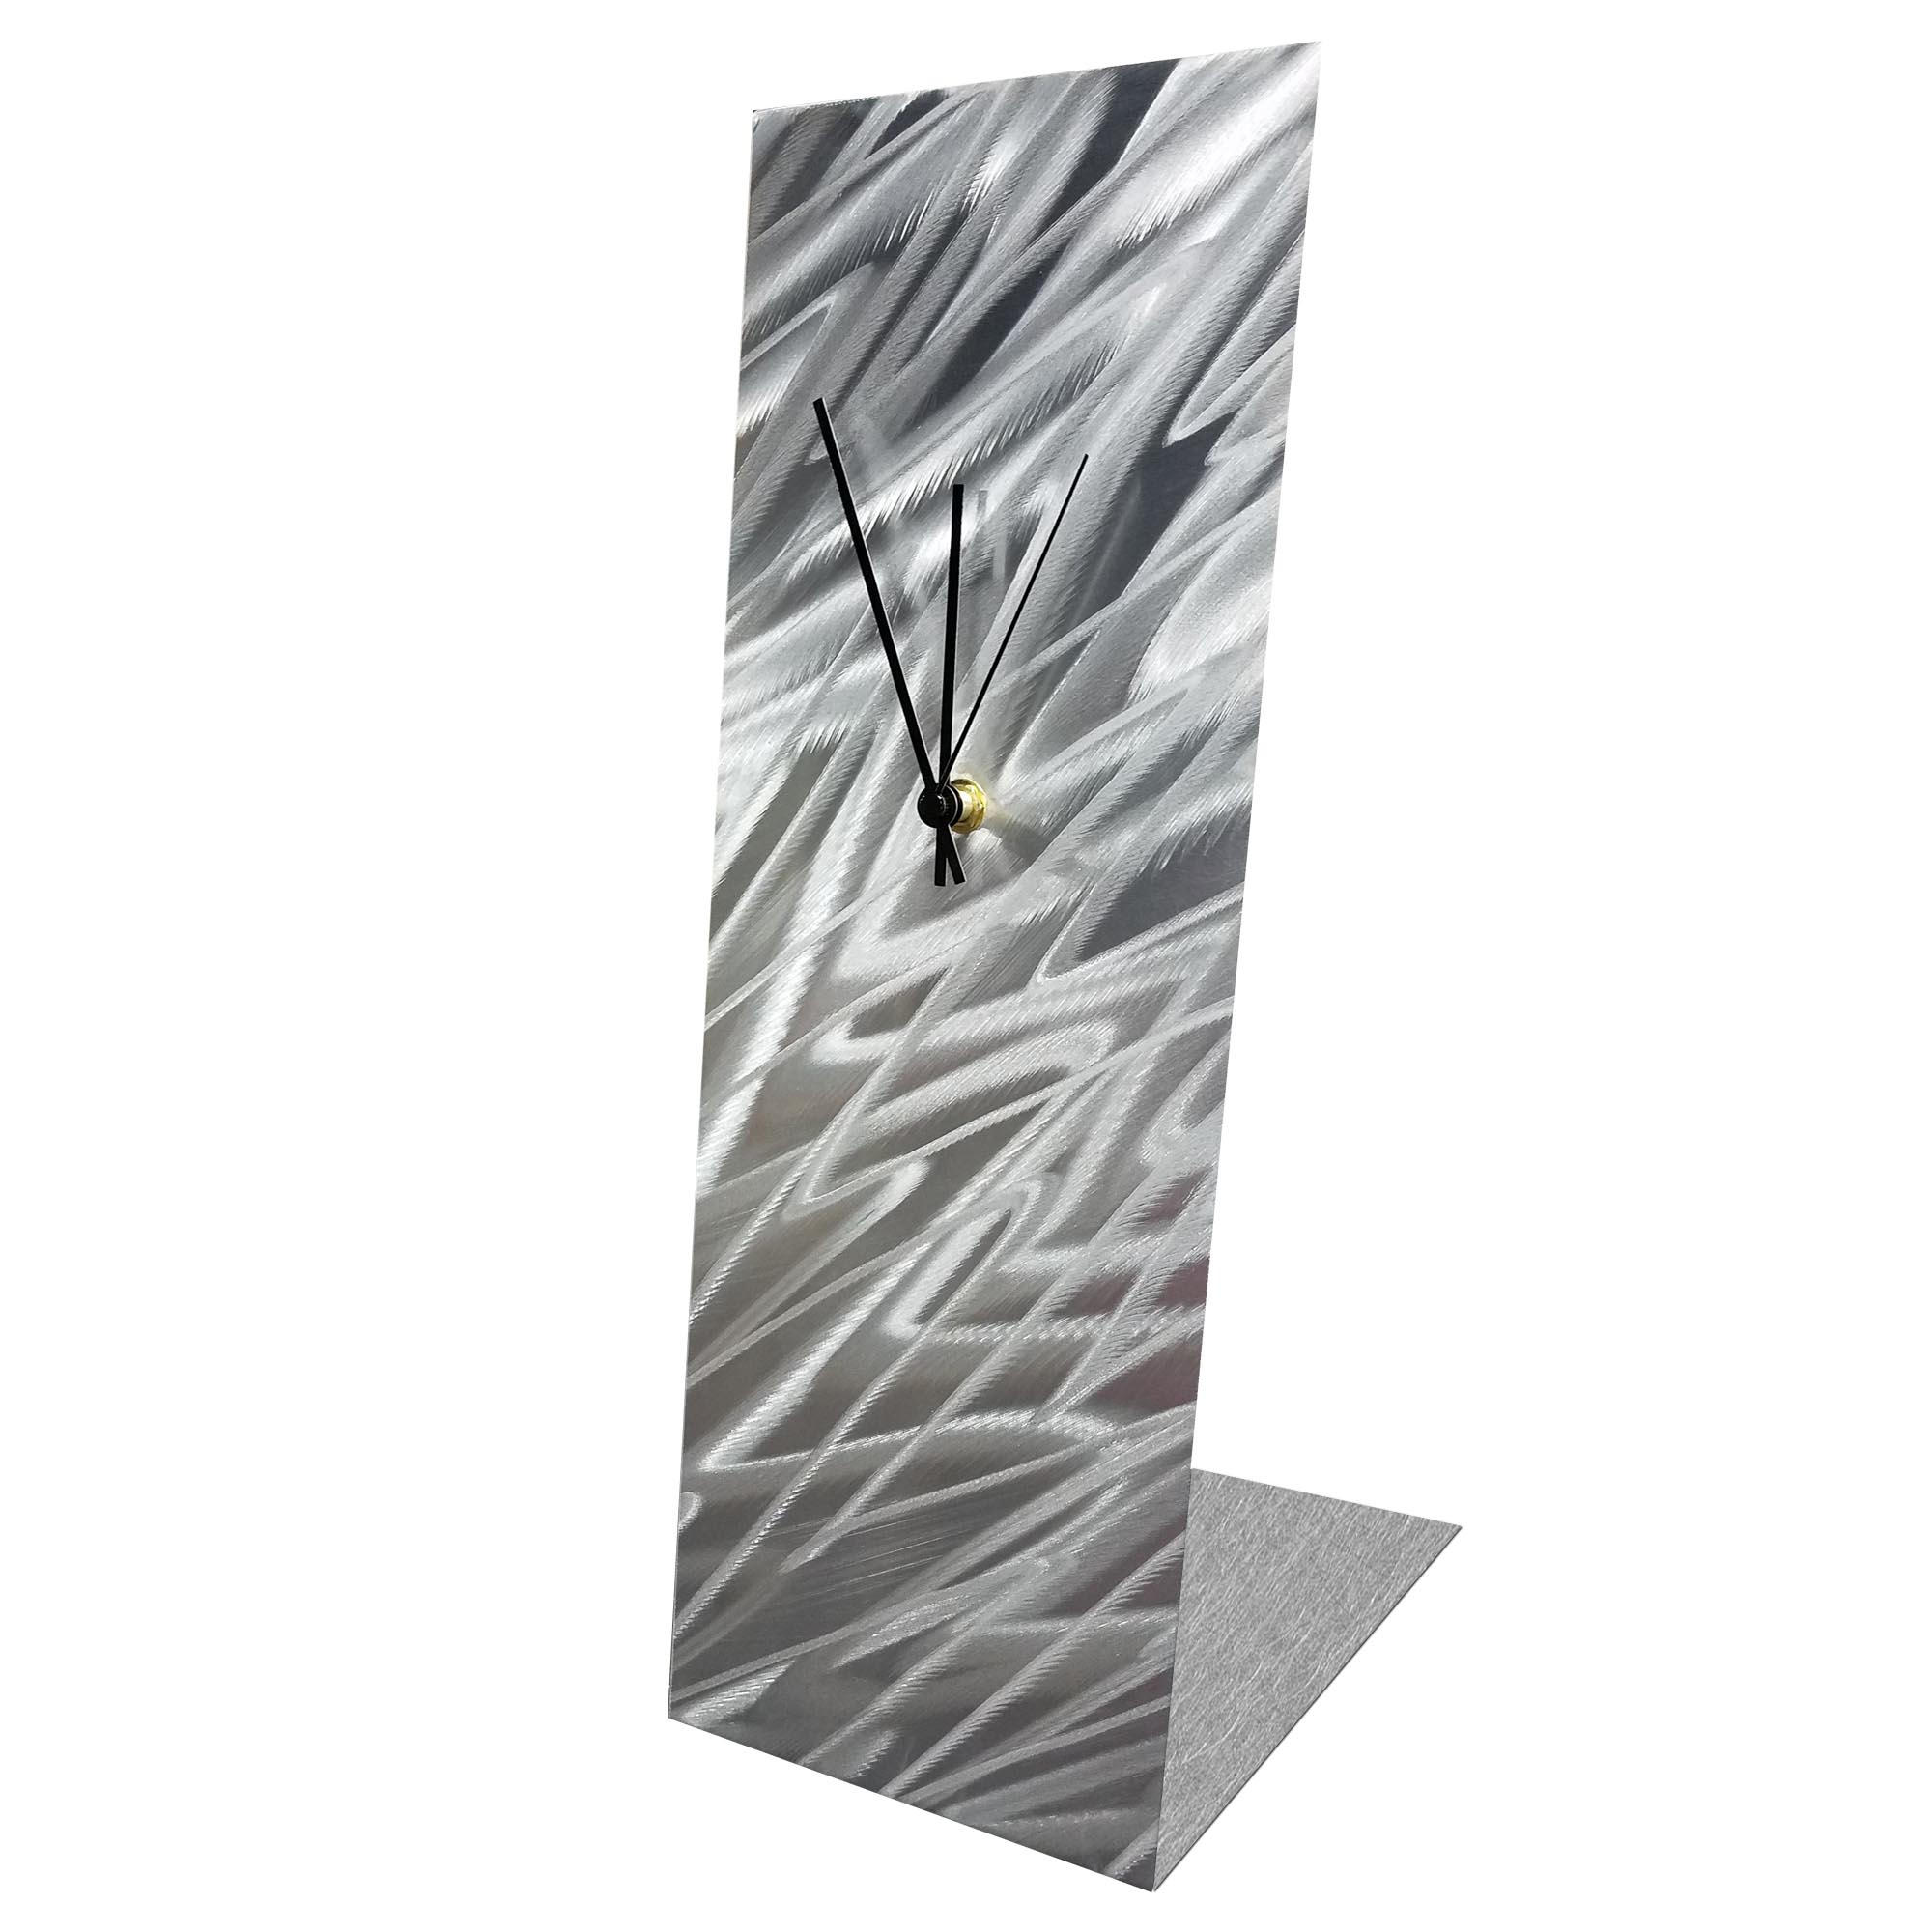 Silver Zig Zag Desk Clock by Helena Martin Modern Table Clock on Natural Aluminum - Image 2